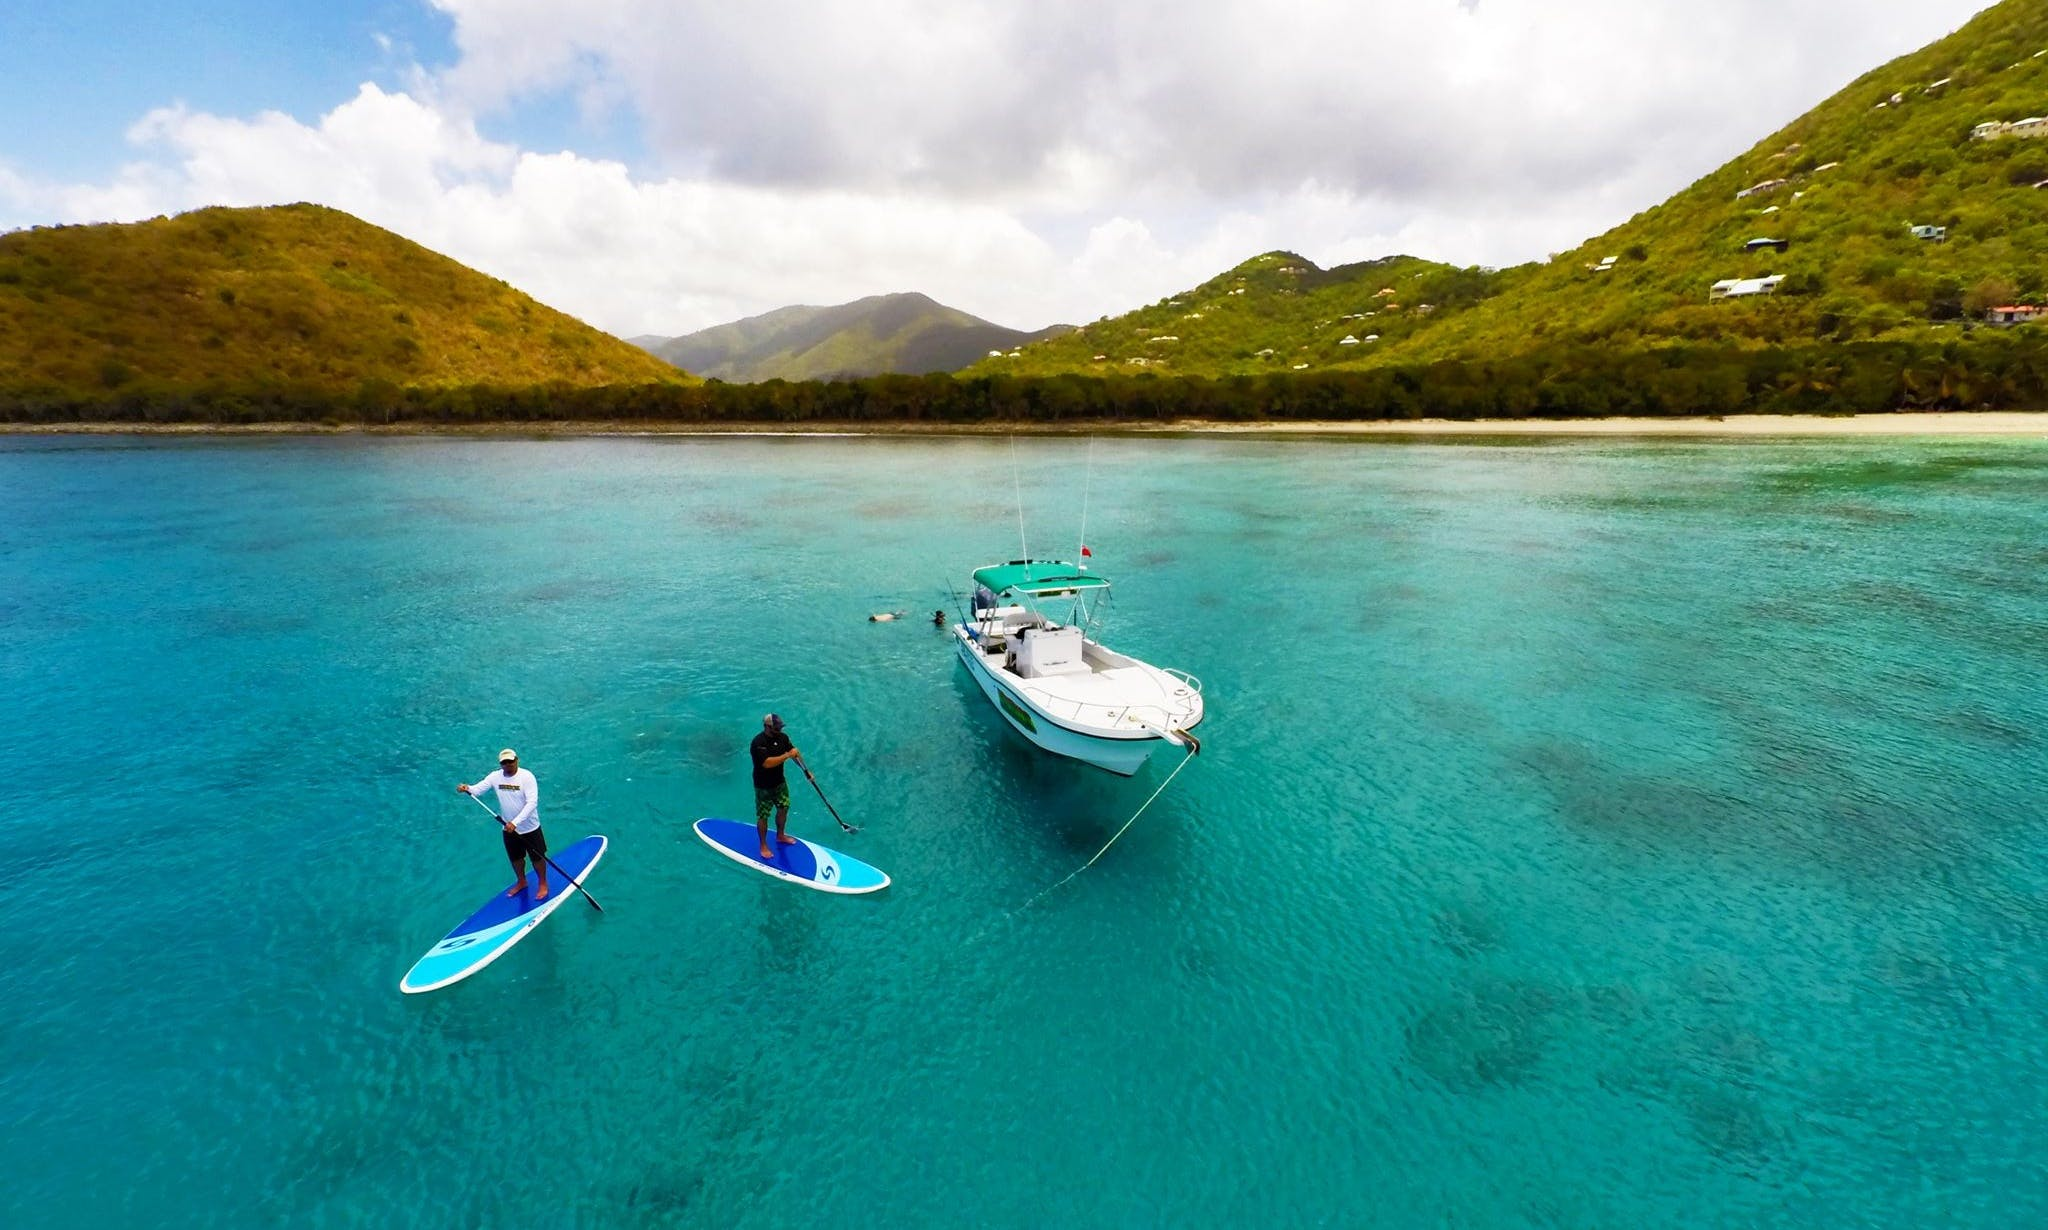 Standup Paddleboard Rental in the British Virgin Islands